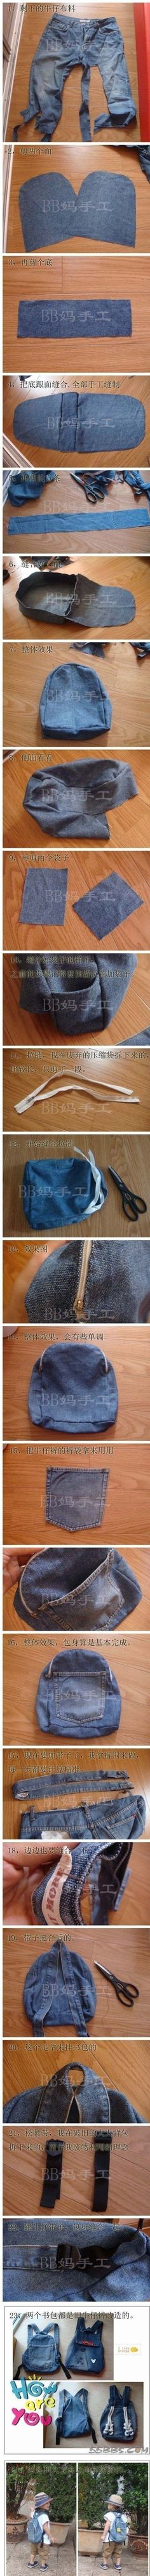 jean backpack DIY by bonniemae. Good for jeans that you can't wear anymore. - - jean backpack DIY by bonniemae. Good for jeans that you can't wear anymore. Diy Jeans, Recycle Jeans, Diy Crafts To Sell, Diy Crafts For Kids, Mochila Jeans, Sewing Crafts, Sewing Projects, Jean Backpack, Small Backpack